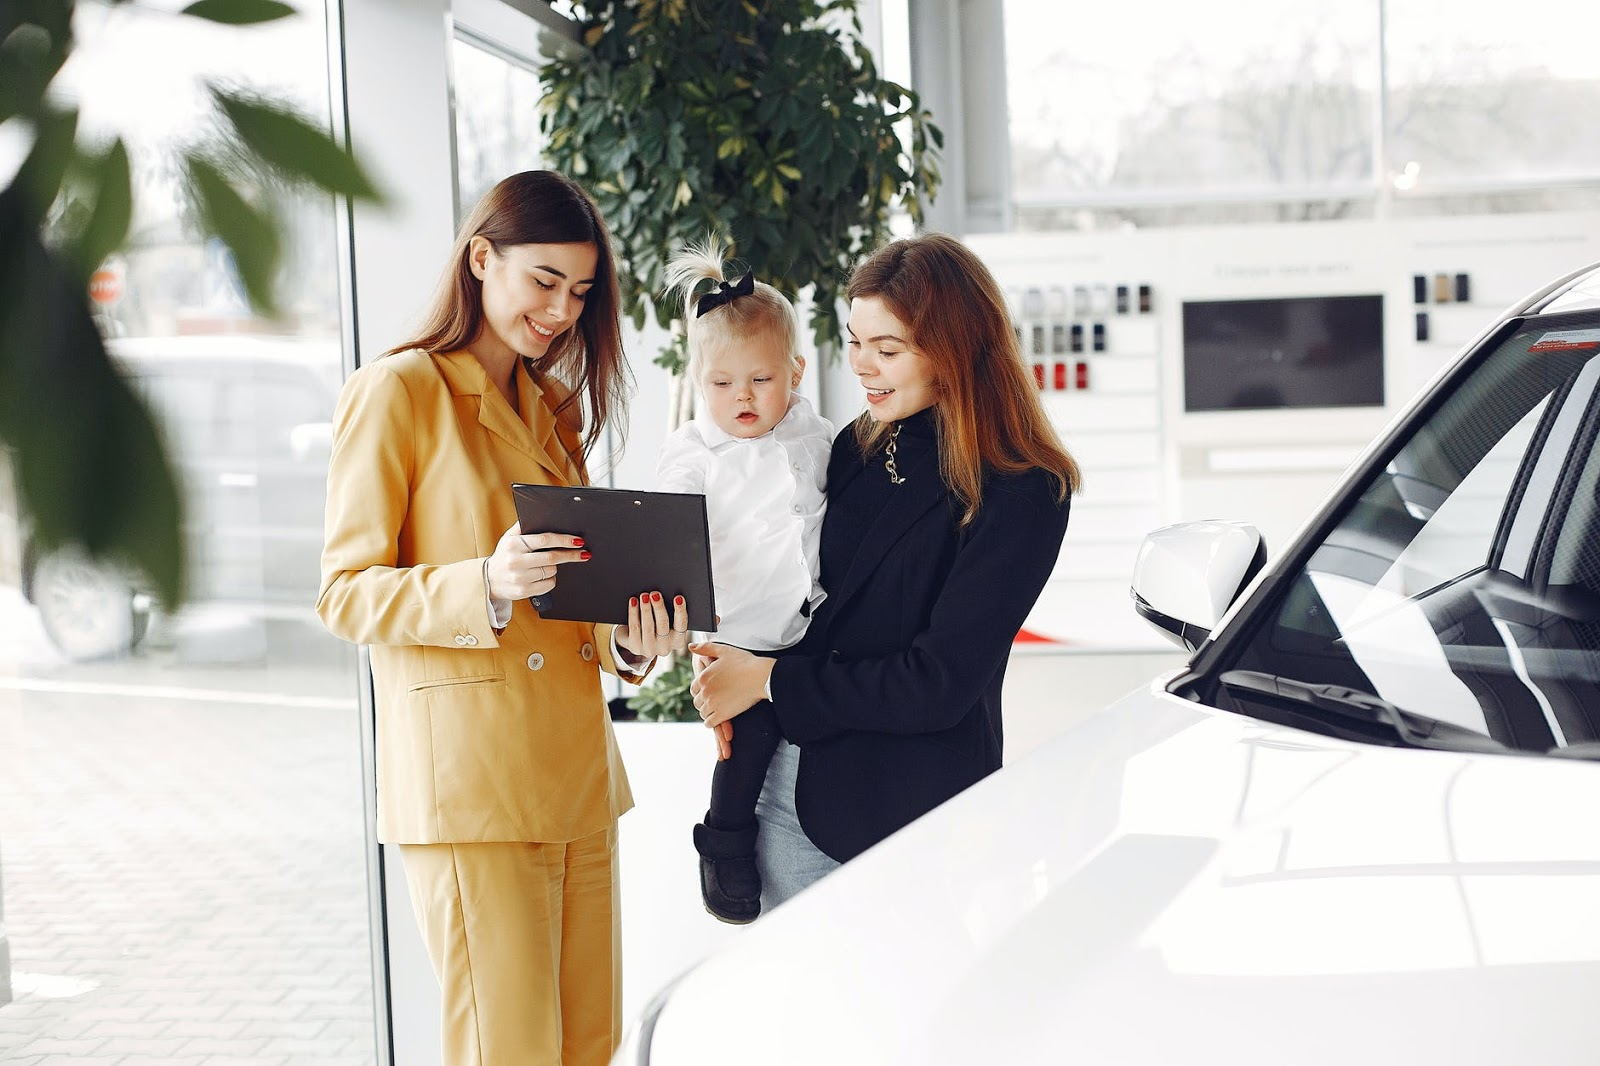 Factors to Consider When Shopping for A New Car